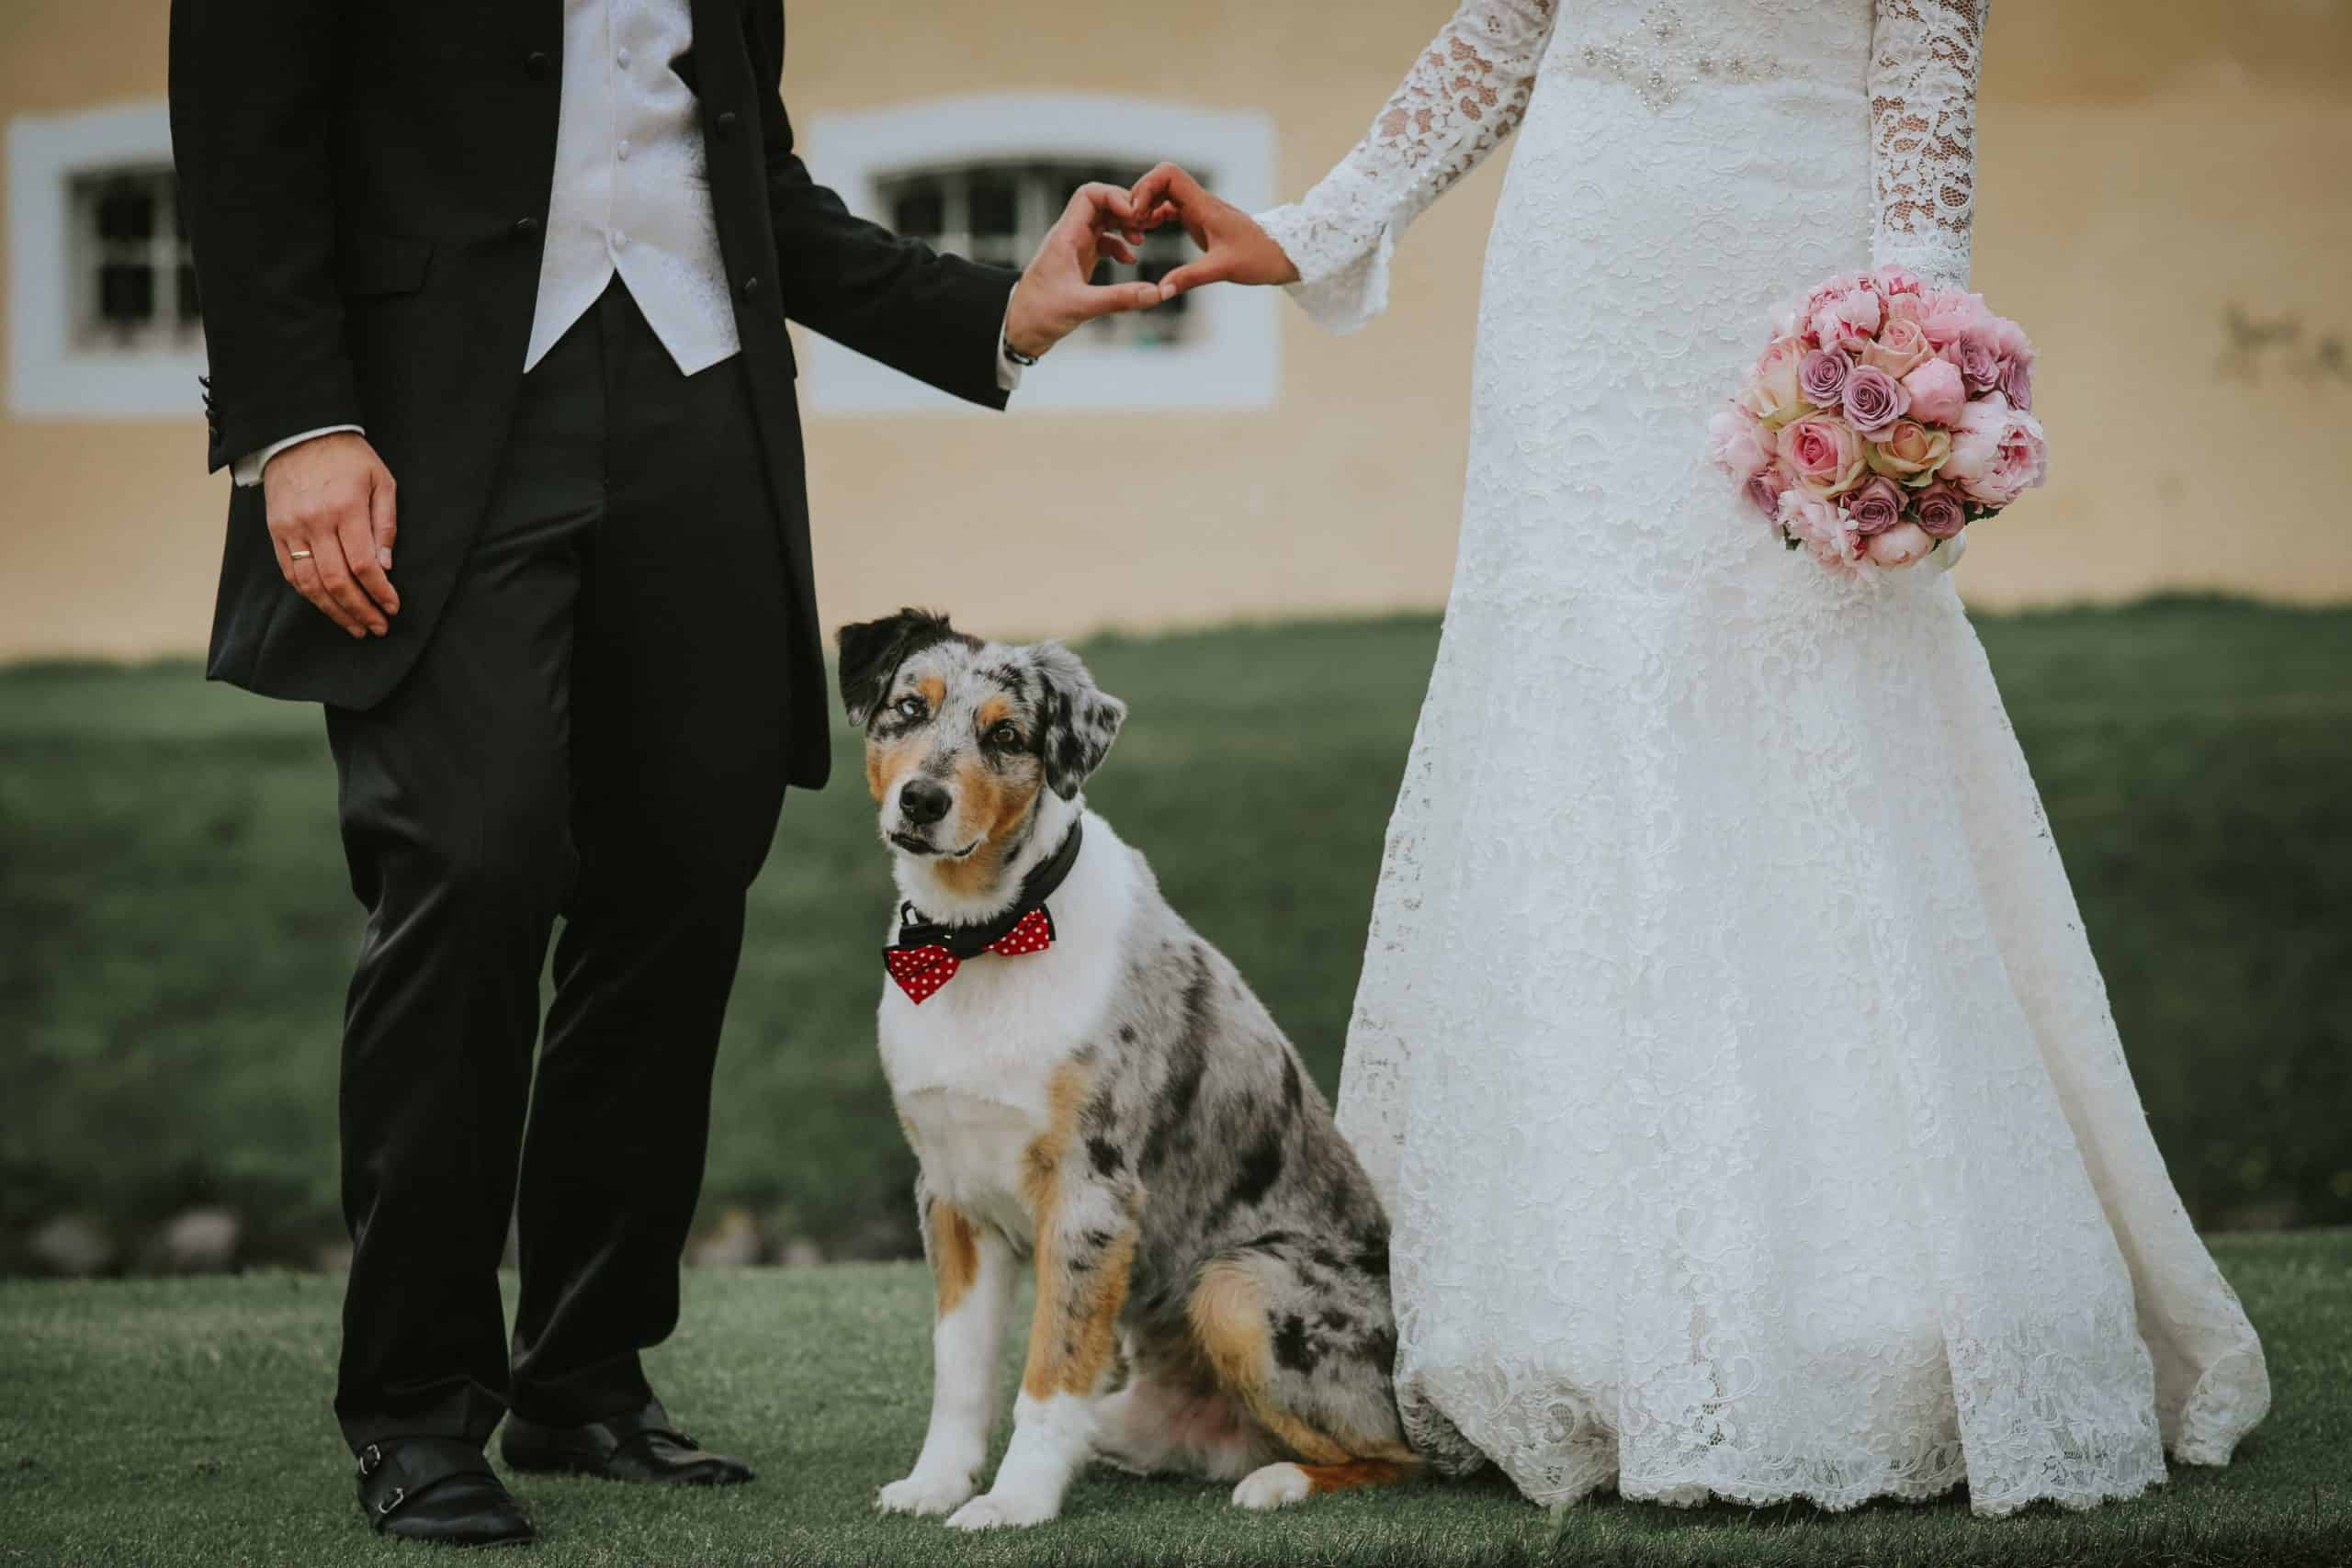 Australian shepherd sits between bride and groom on their wedding day. Traditionalwedding roles for dogs include ring bearer, best pooch, or pooch of honor.